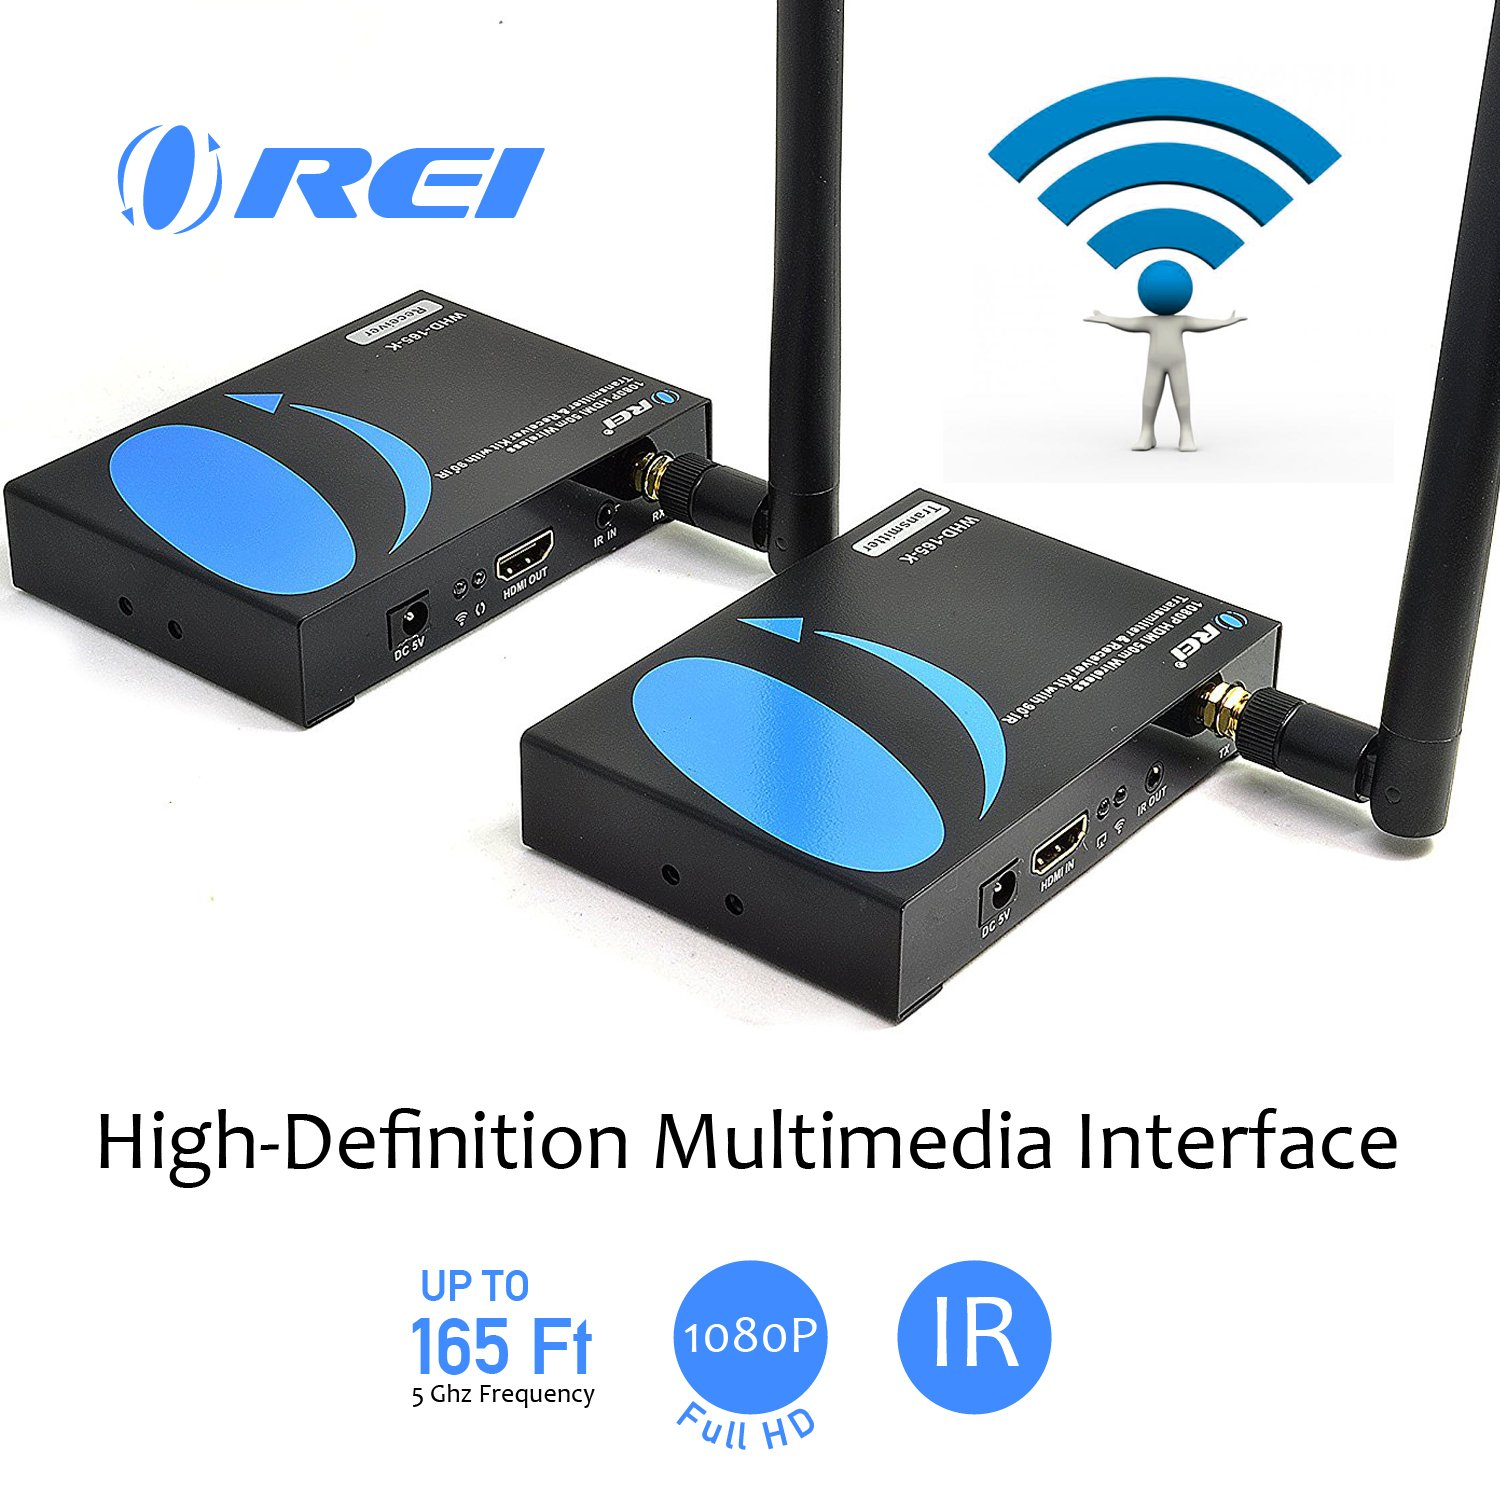 OREI HDS-104 1x4 Powered 1080P V1.4 Certified HDMI Splitter with Full Ultra HD 4K//2K and 3D Resolutions w// EDID Support